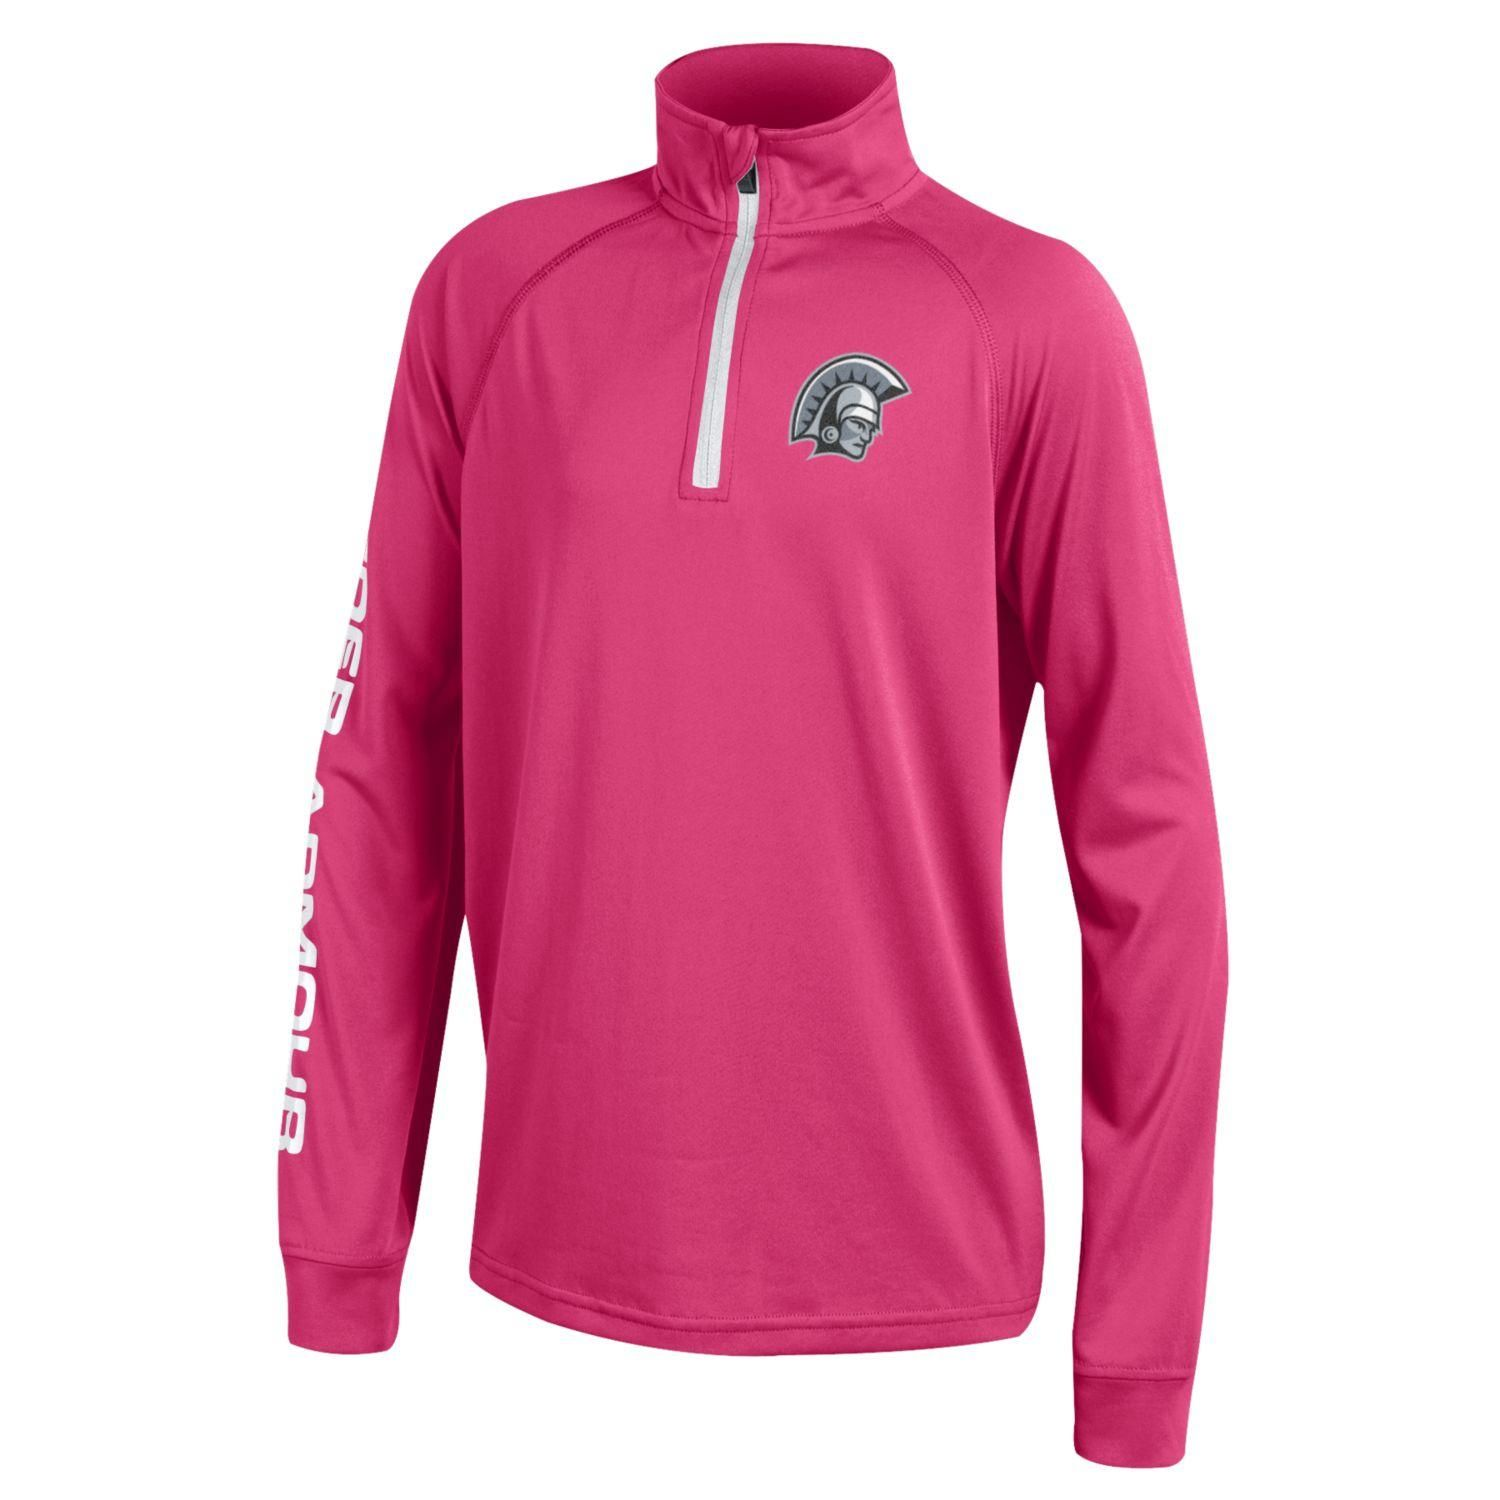 Under Armour Youth 1/4 zip Tech Fleece pullover in Pink